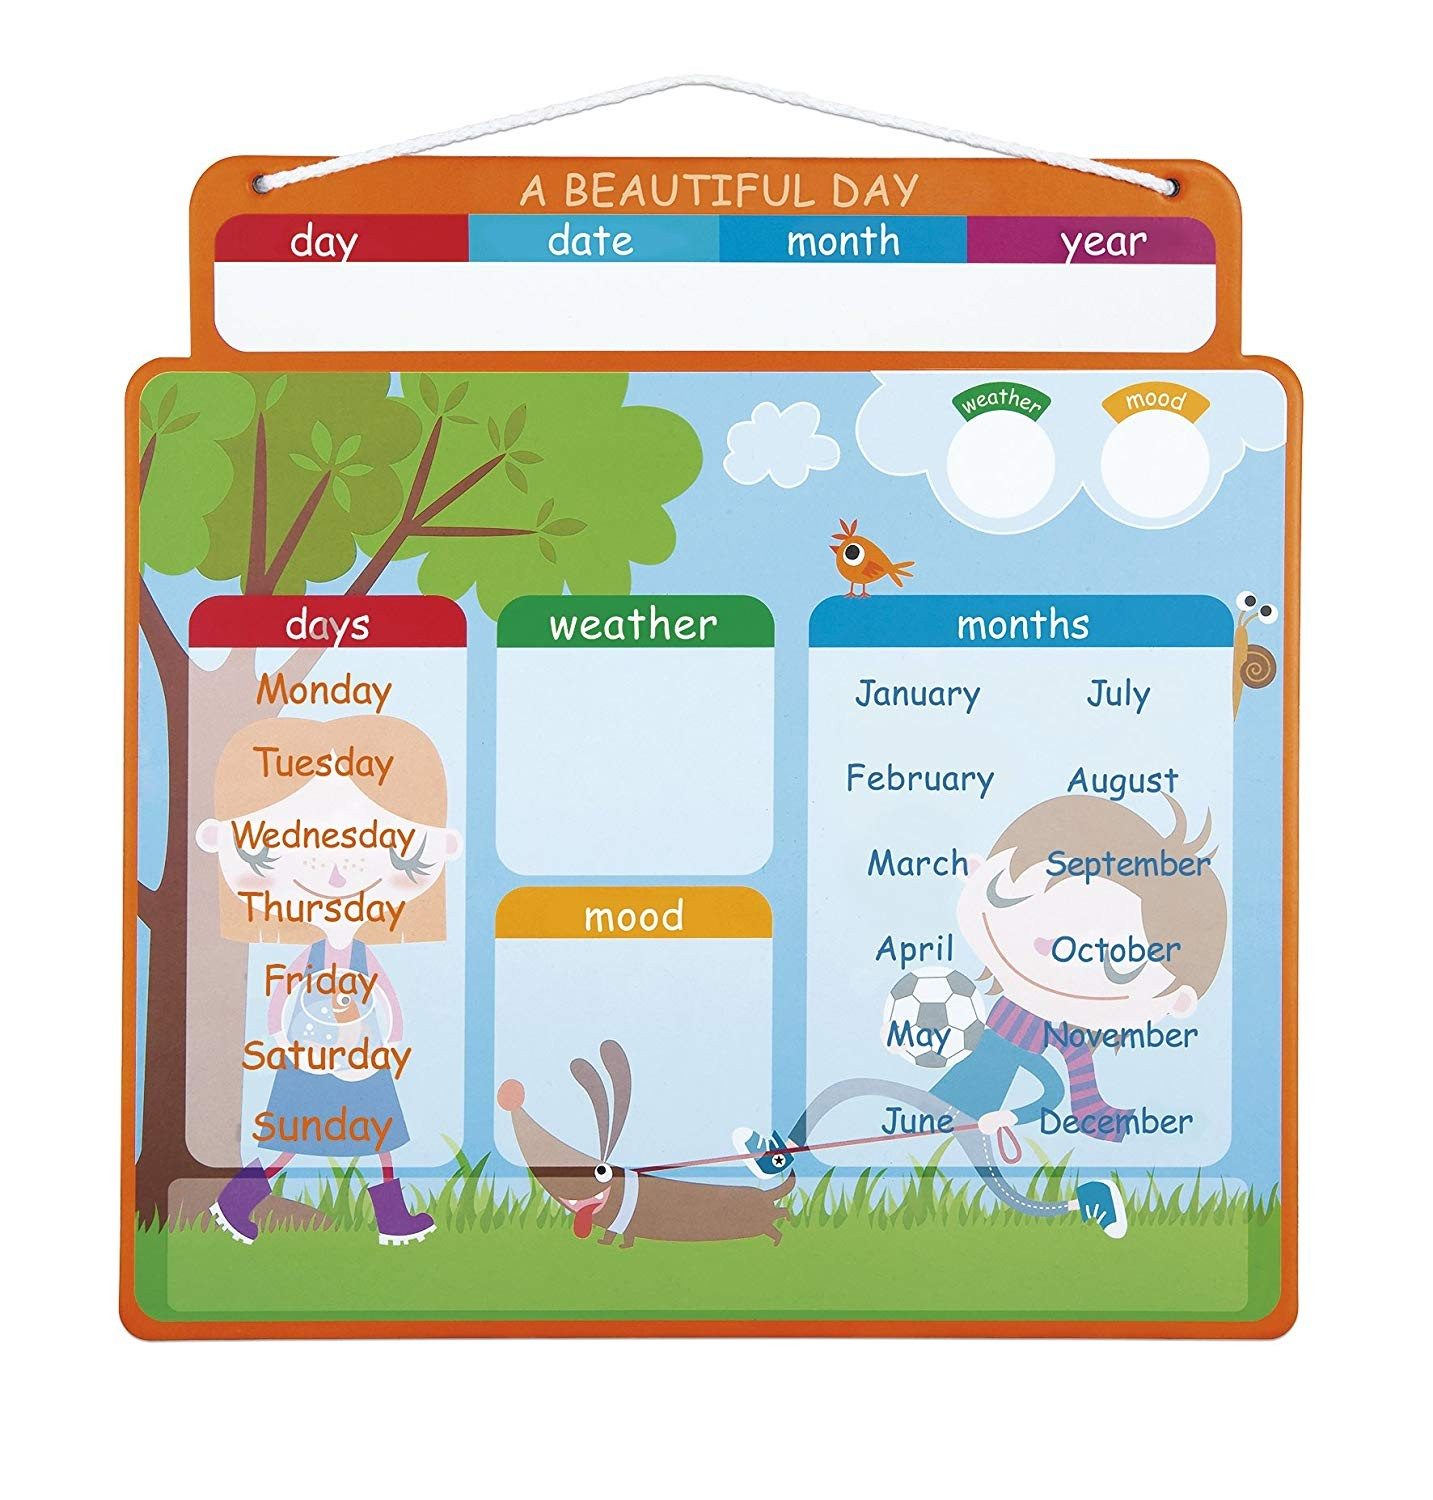 March Reading Month Calendar Activities Más Actual Janod J A Beautiful Day Magnetic Calendar English Version Of March Reading Month Calendar Activities Más Populares Old Style and New Style Dates